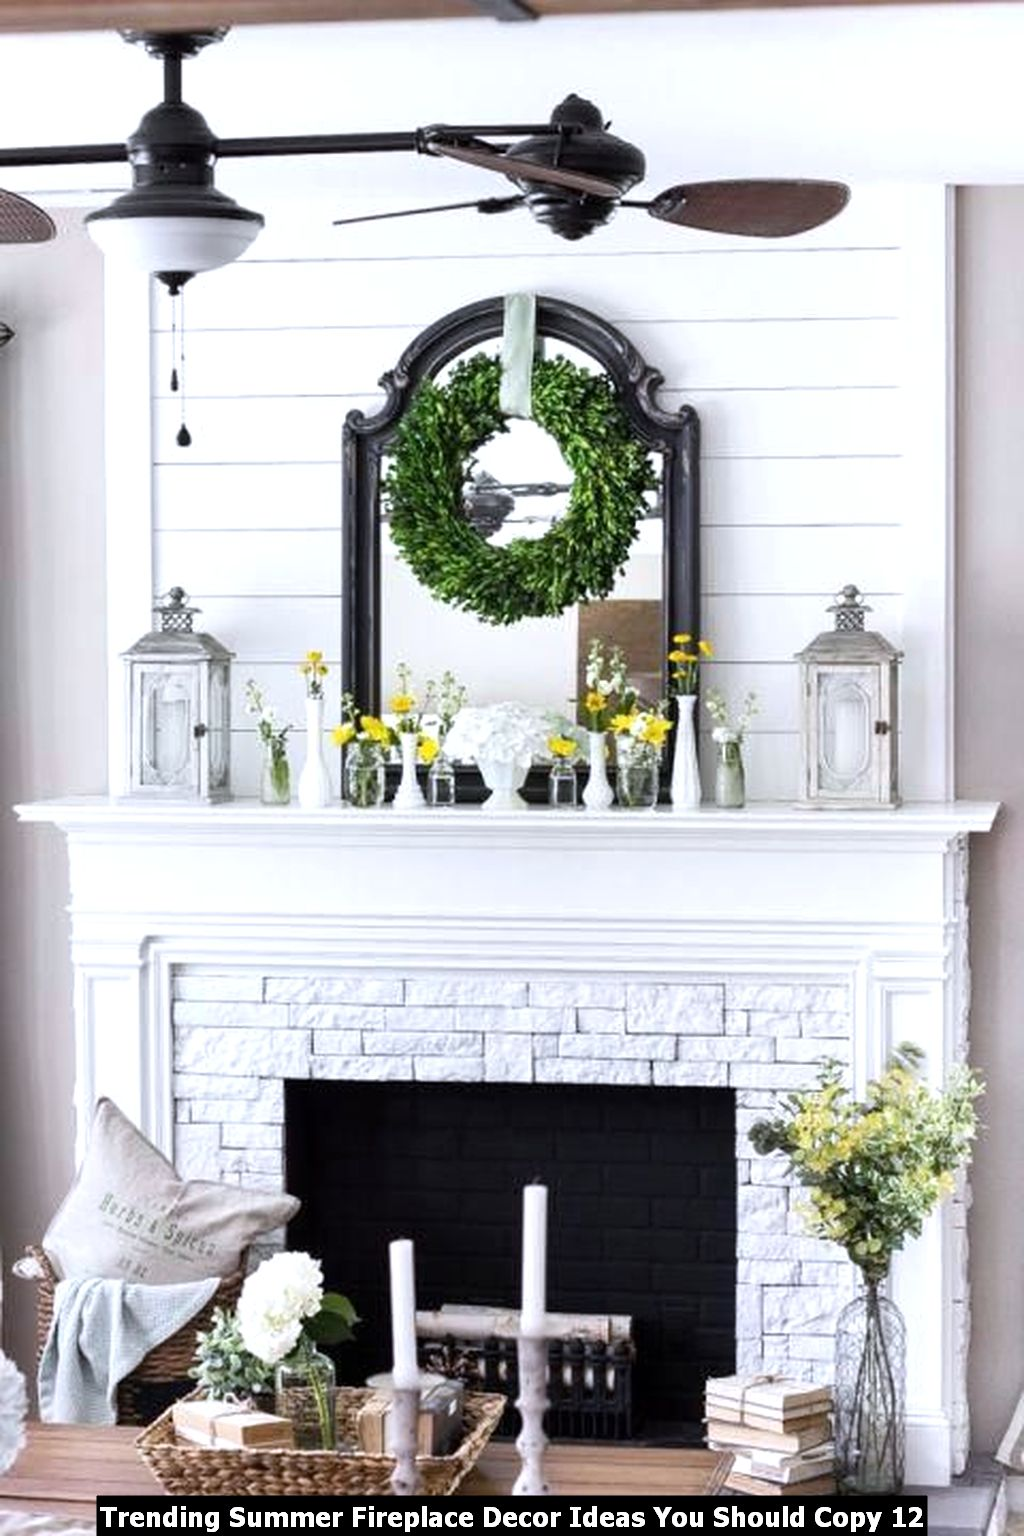 Trending Summer Fireplace Decor Ideas You Should Copy 12